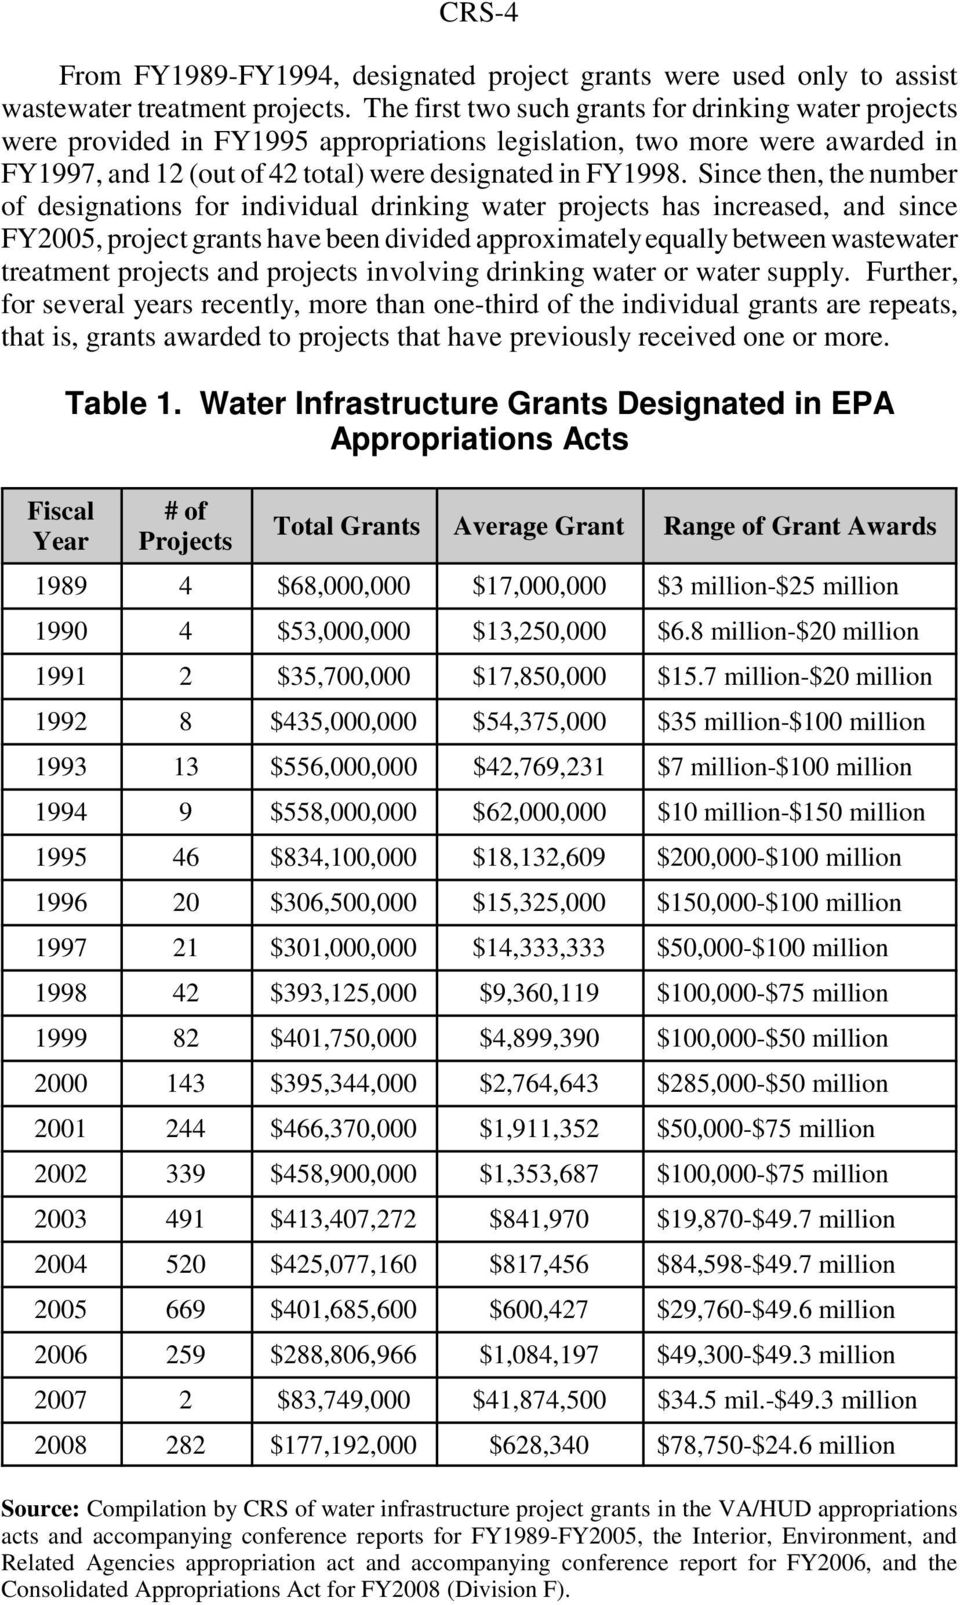 Since then, the number of designations for individual drinking water projects has increased, and since FY2005, project grants have been divided approximately equally between wastewater treatment